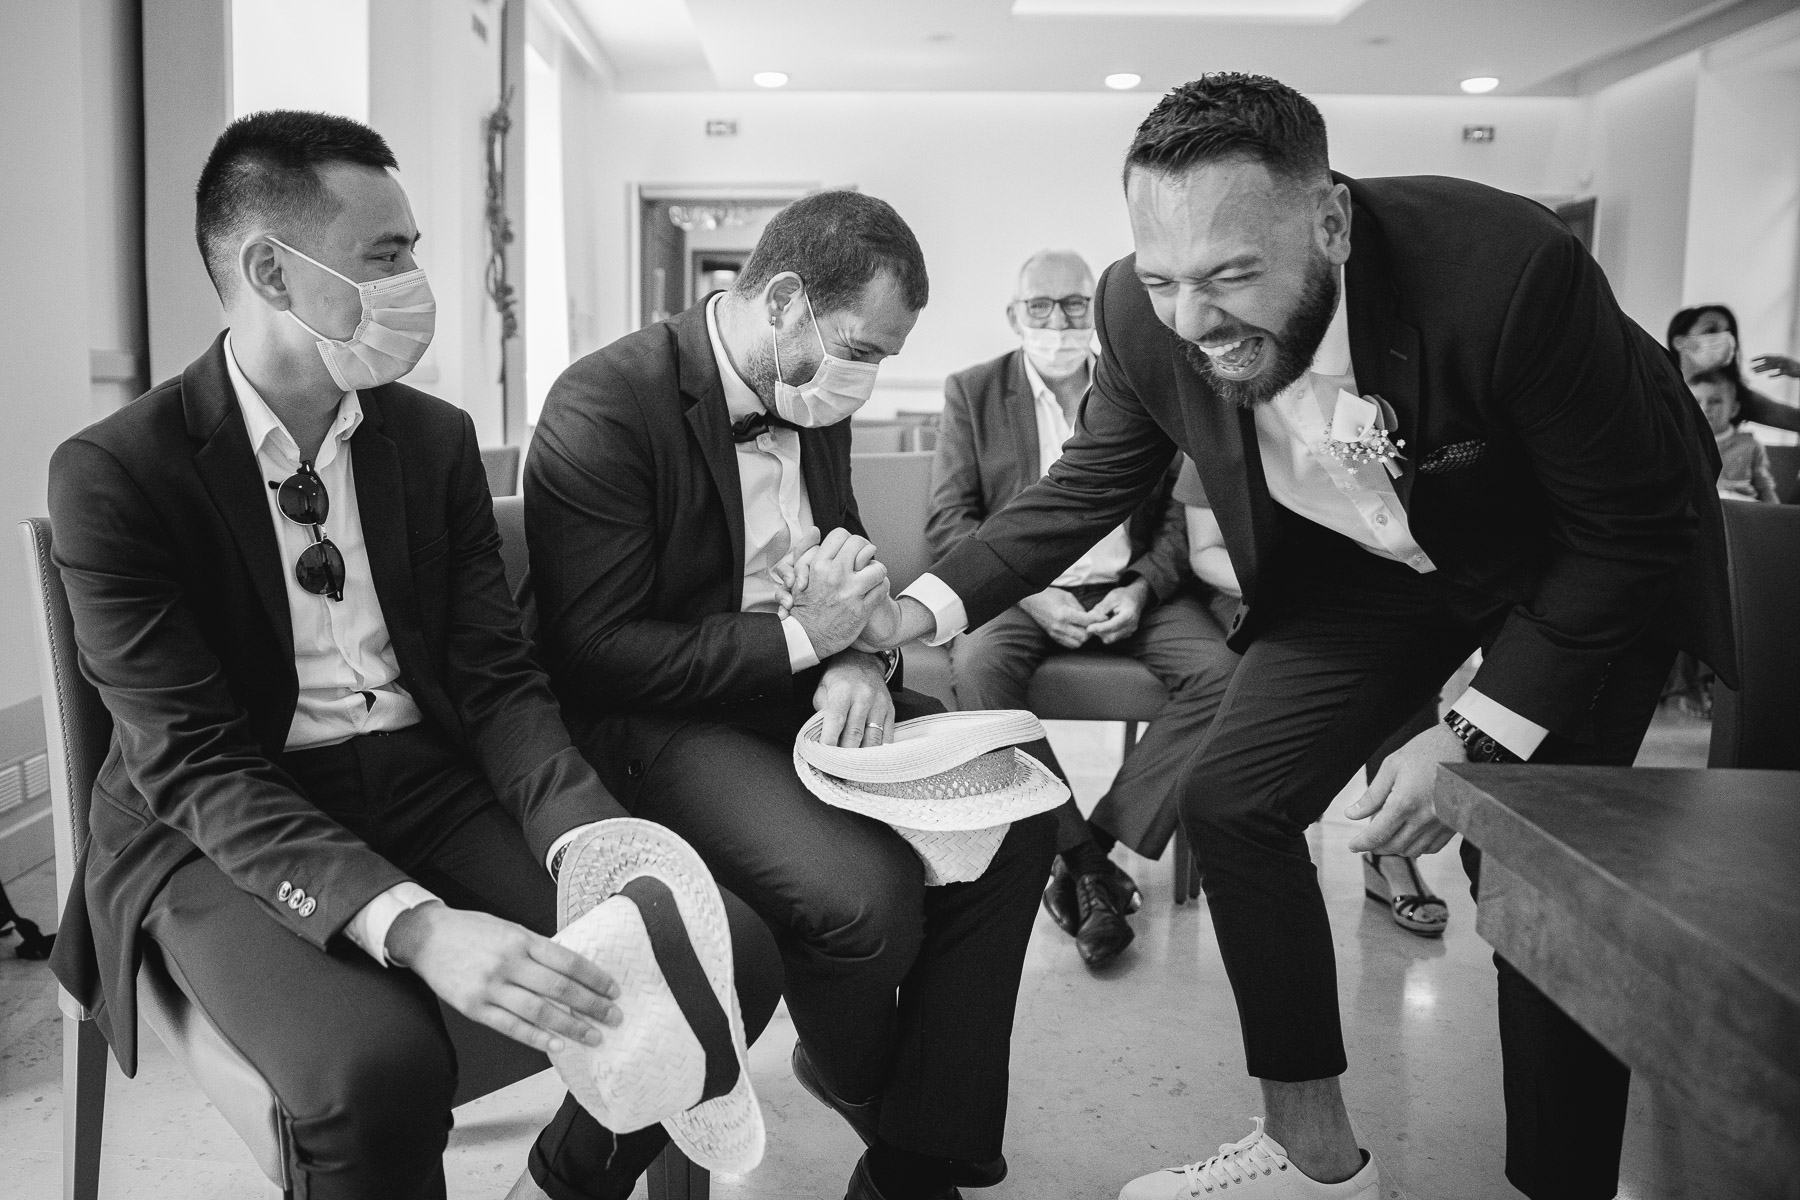 Pontault Combault City Hall Elopement Ceremony Image | The groom has a hearty laugh with some of the guests